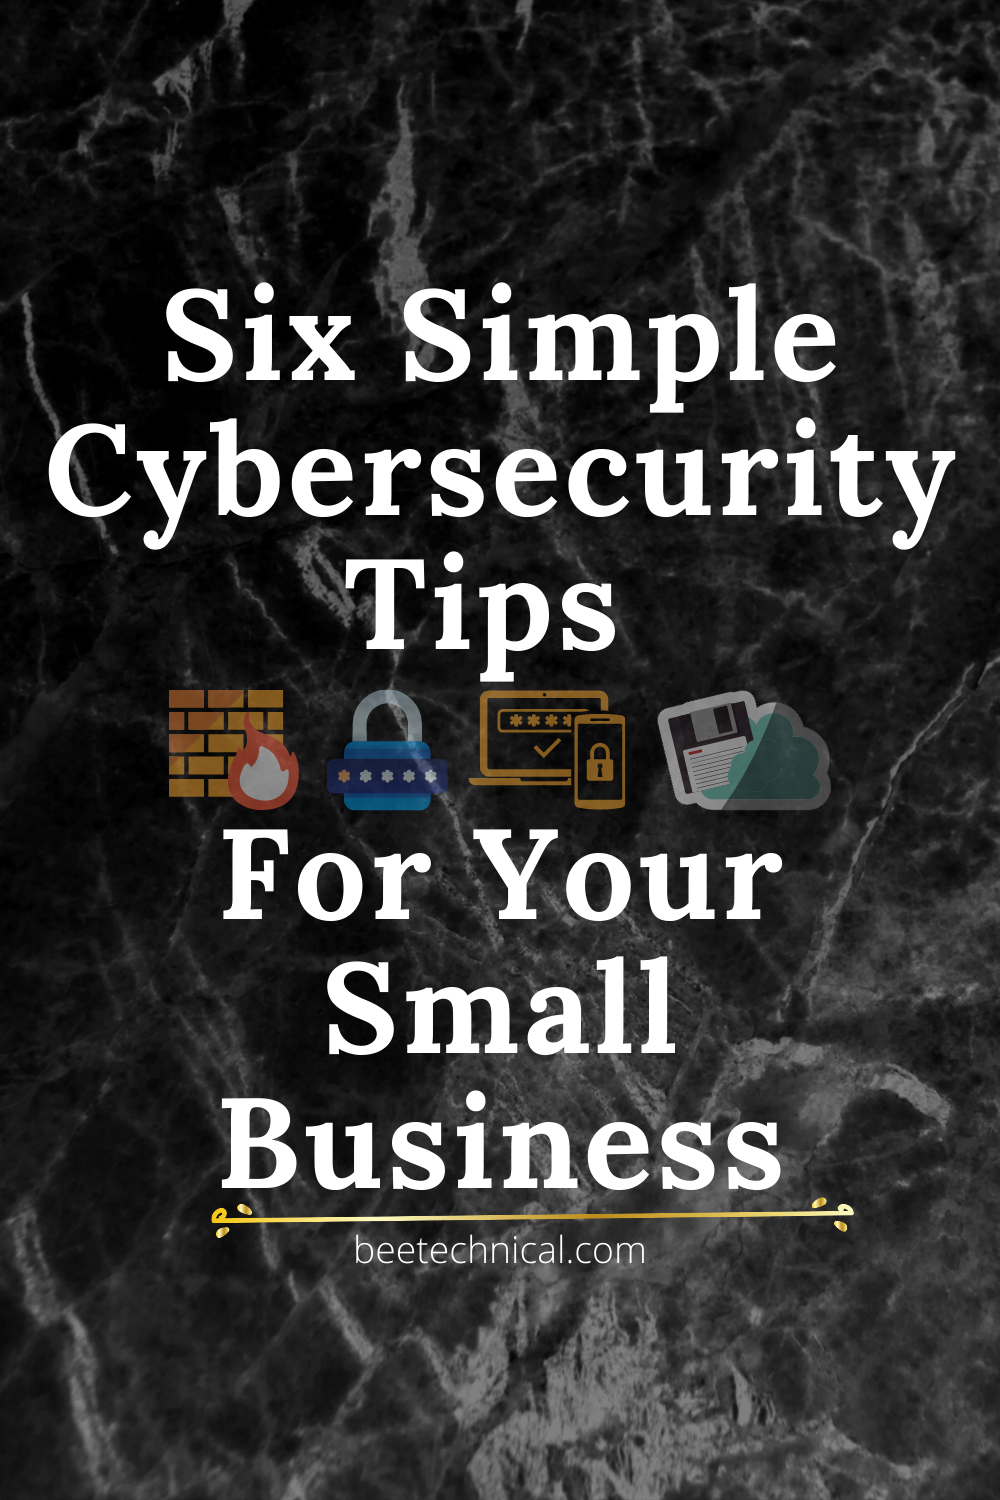 6 TIPS TO CYBERSECURITY FOR SMALL BUSINESS WEBSITES in